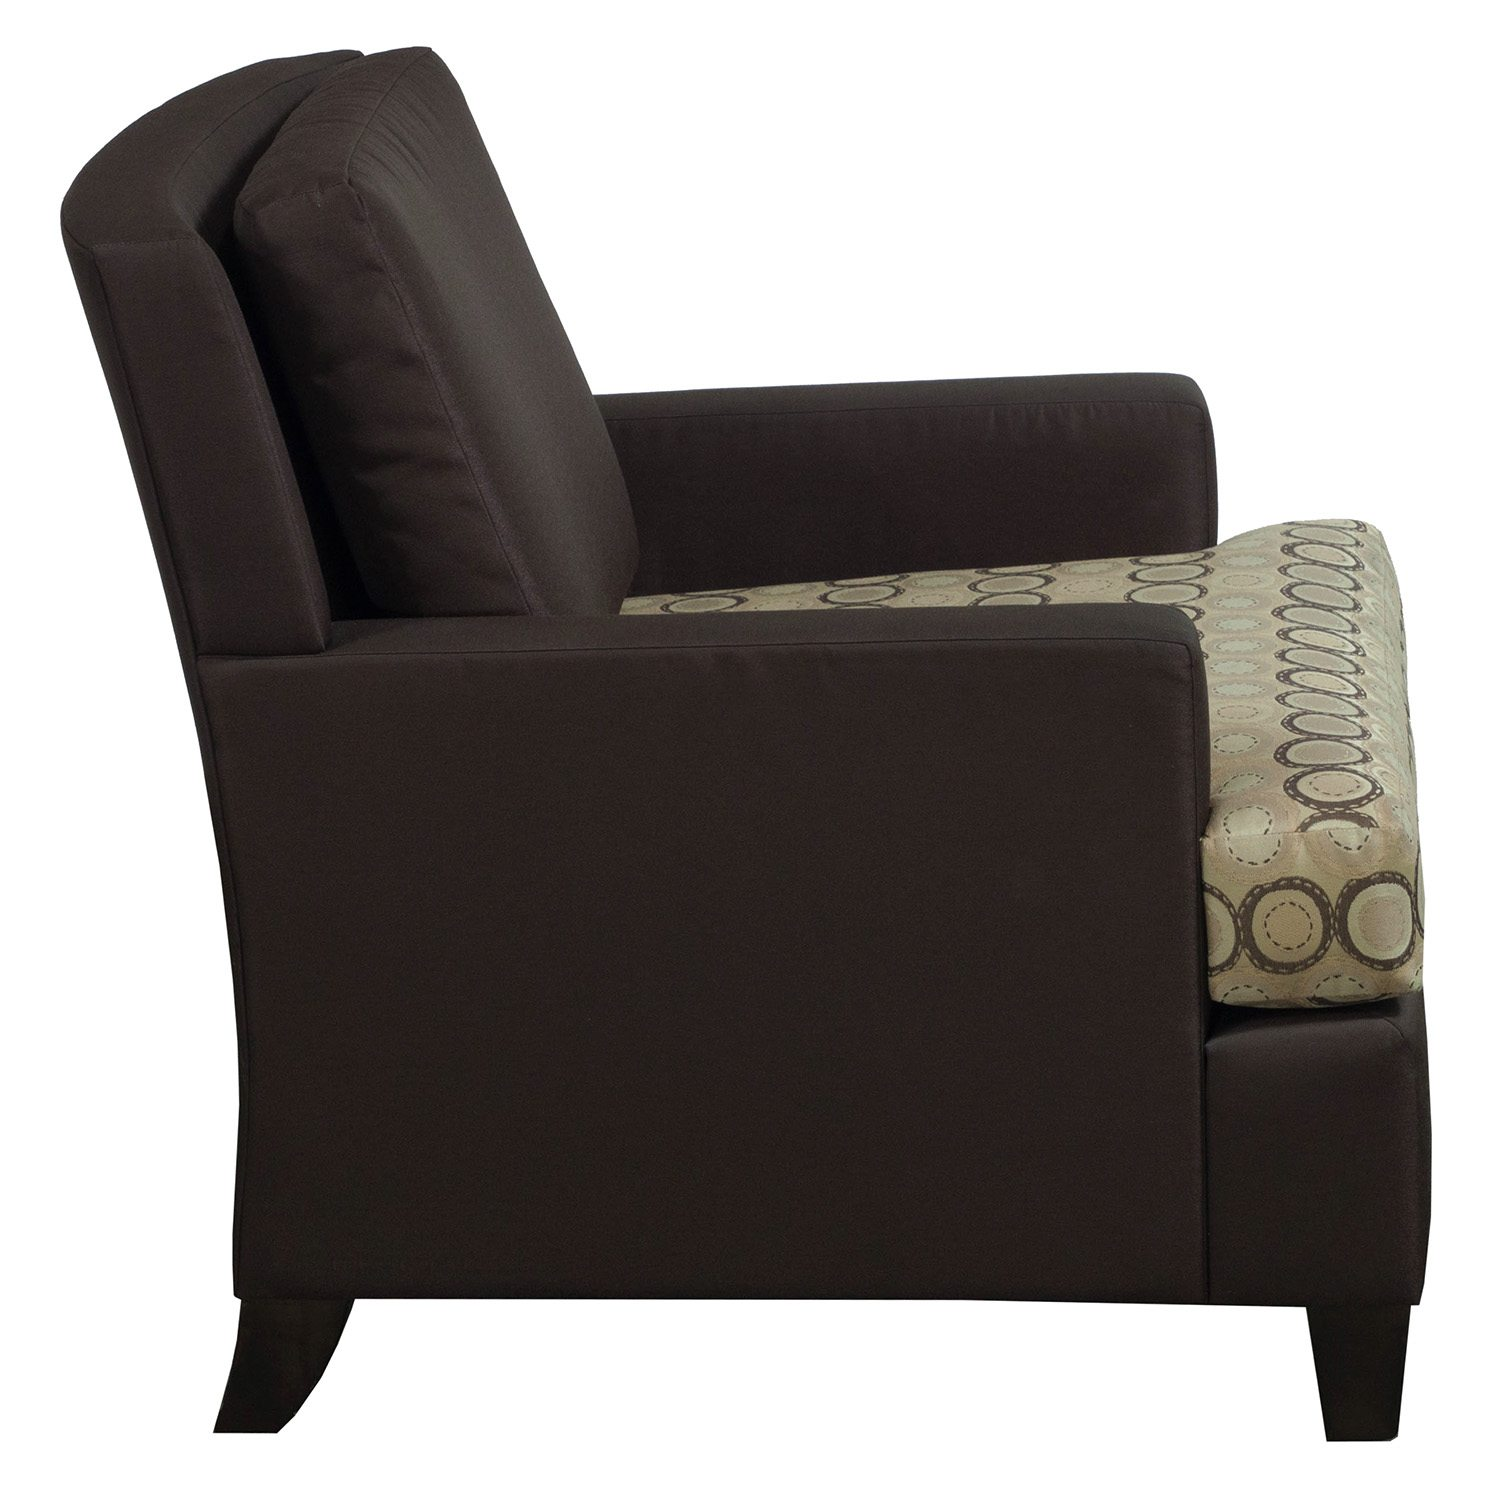 Martin Brattrud Used Lounge Chair W Arms Brown